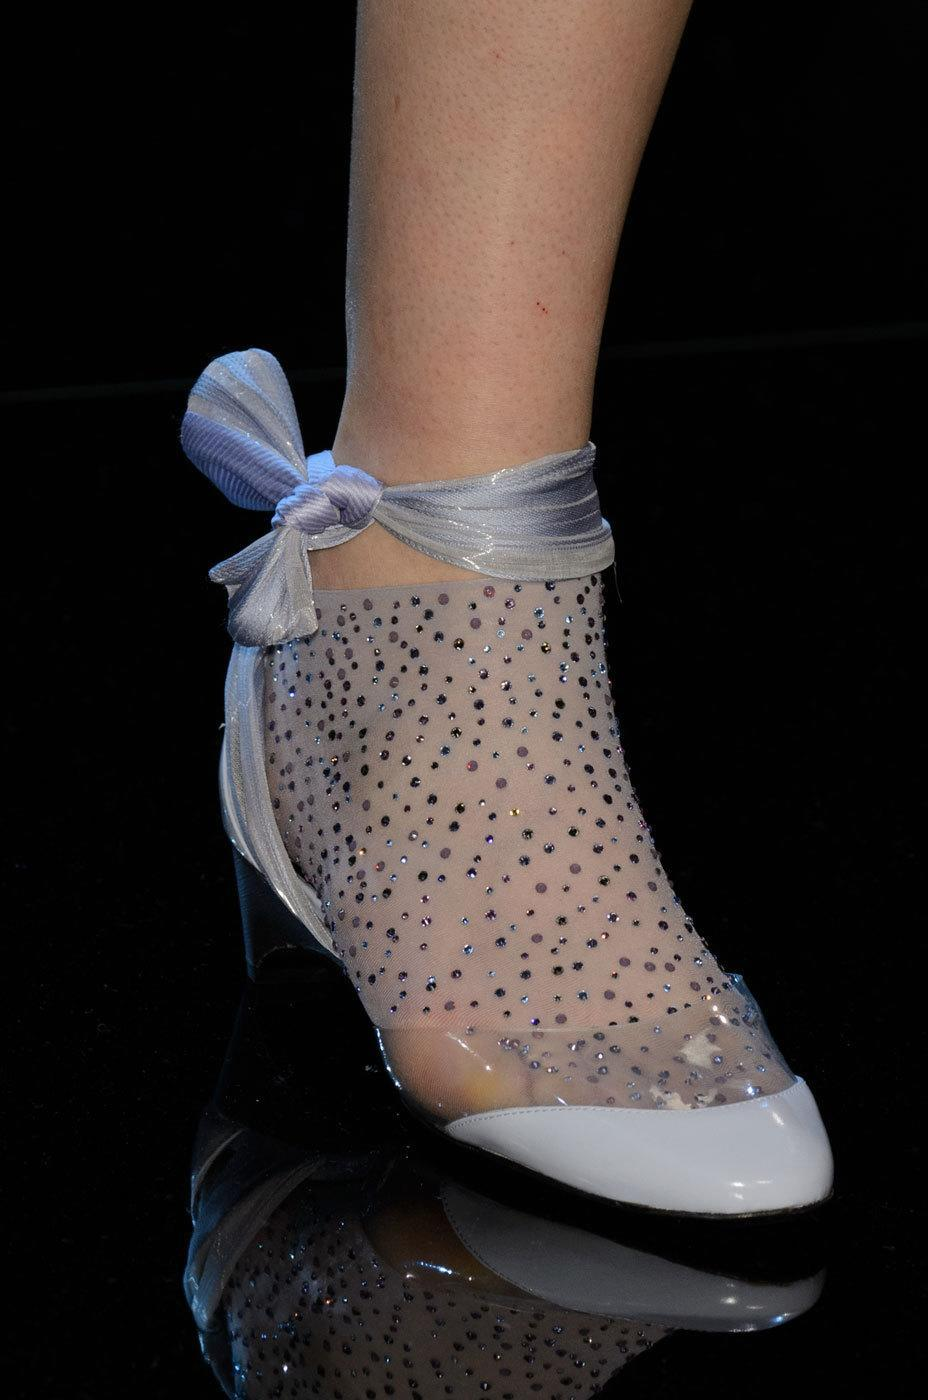 """<p>This diamante sheer sock/ribbon/jelly hybrid at <a href=""""http://www.armani.com/us/prive_section"""" rel=""""nofollow noopener"""" target=""""_blank"""" data-ylk=""""slk:Armani Privé"""" class=""""link rapid-noclick-resp"""">Armani Privé</a> is perfect for the couture princess in your life. <i>Photos: Imaxtree</i></p>"""